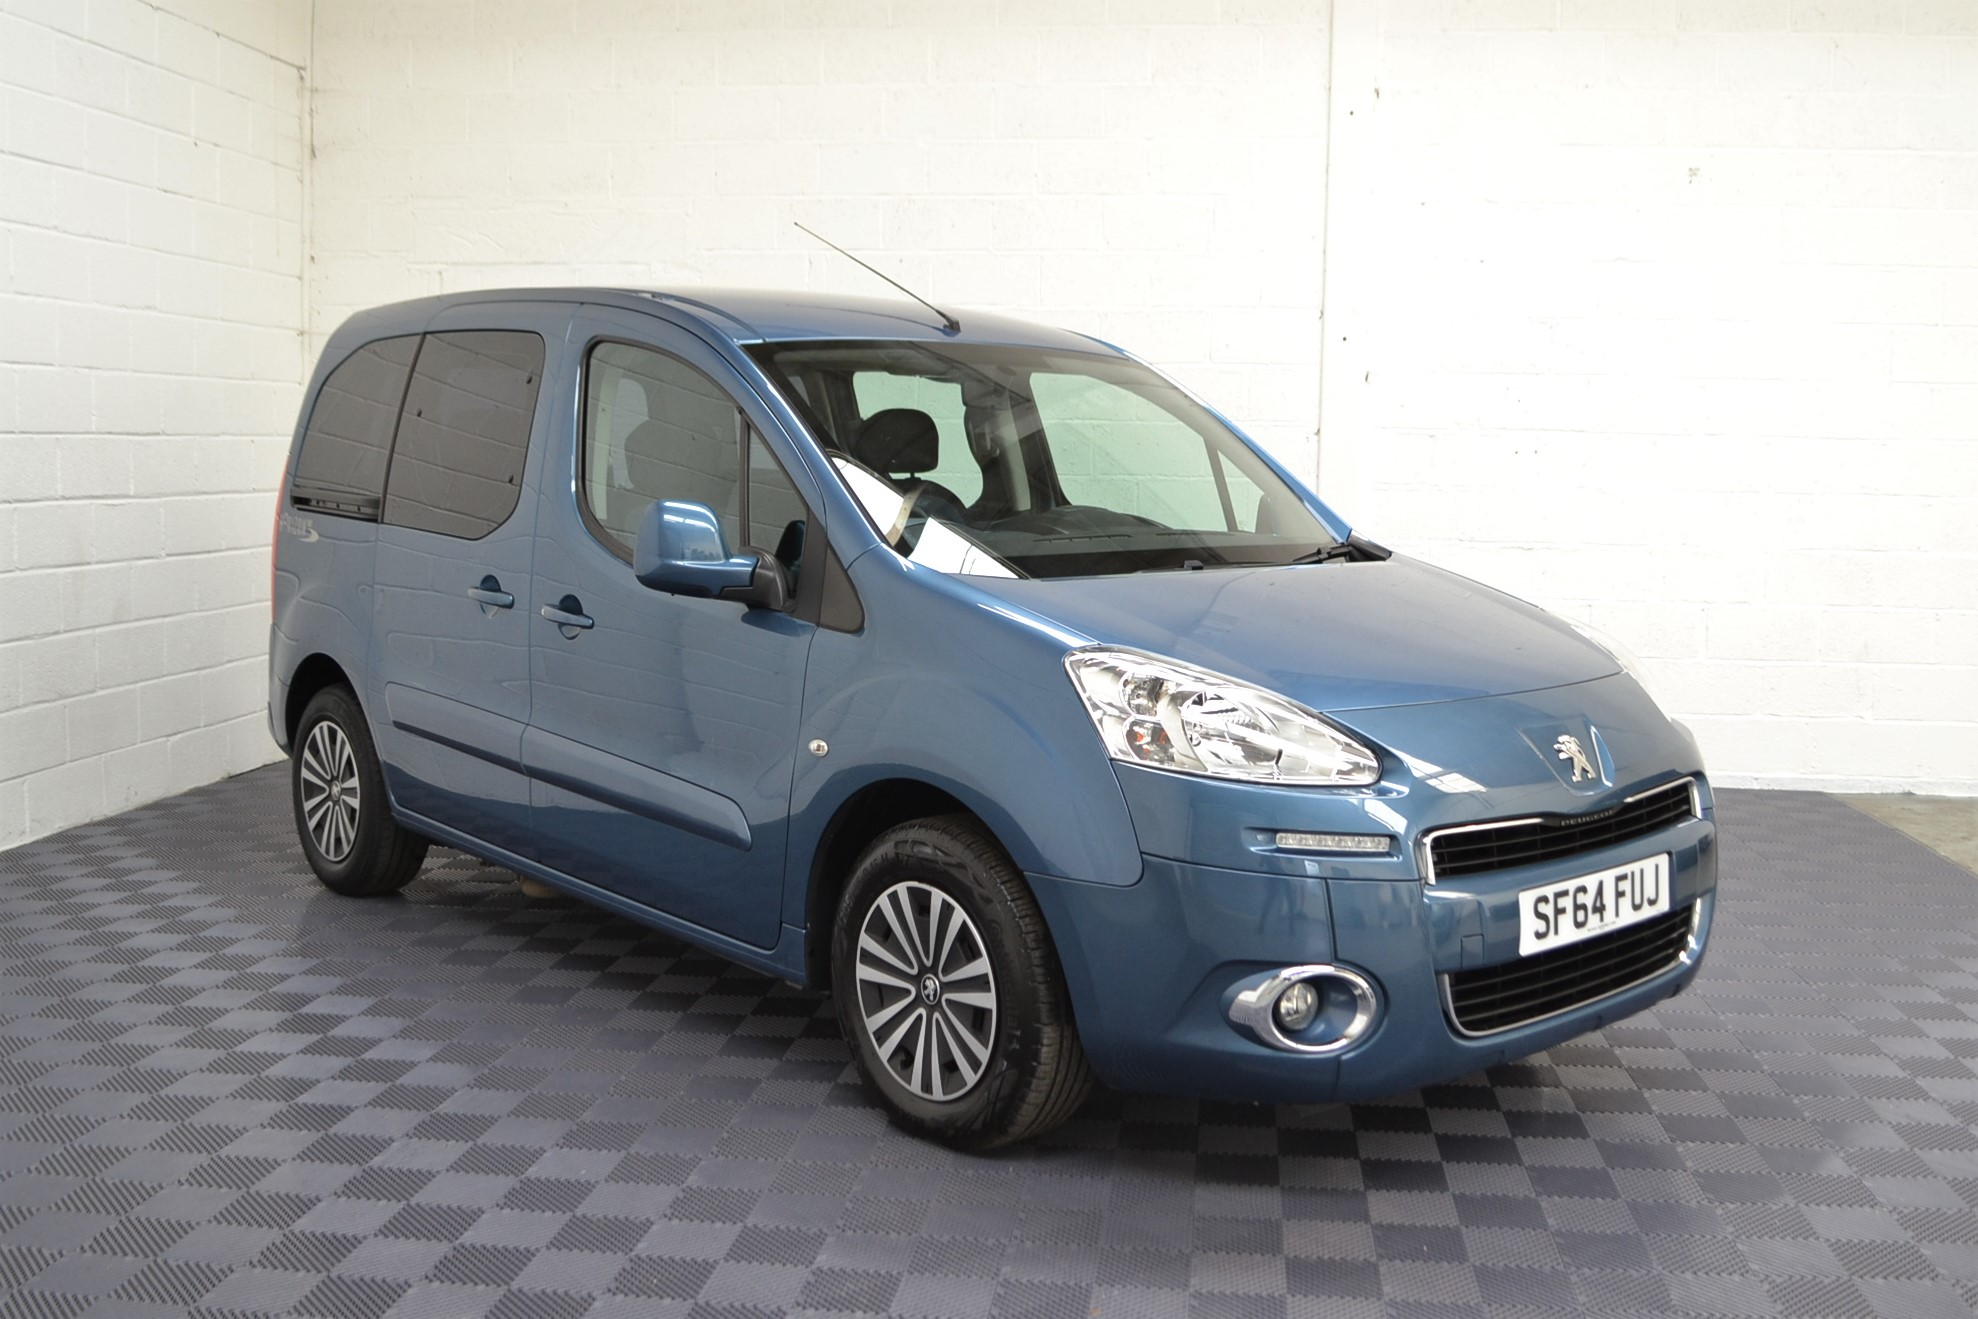 WAV Cars For Sale Bristol Wheelchair Accessible Vehicles Used For Sale Somerset Devon Dorset Bath Peugeot Partner Automatic 8